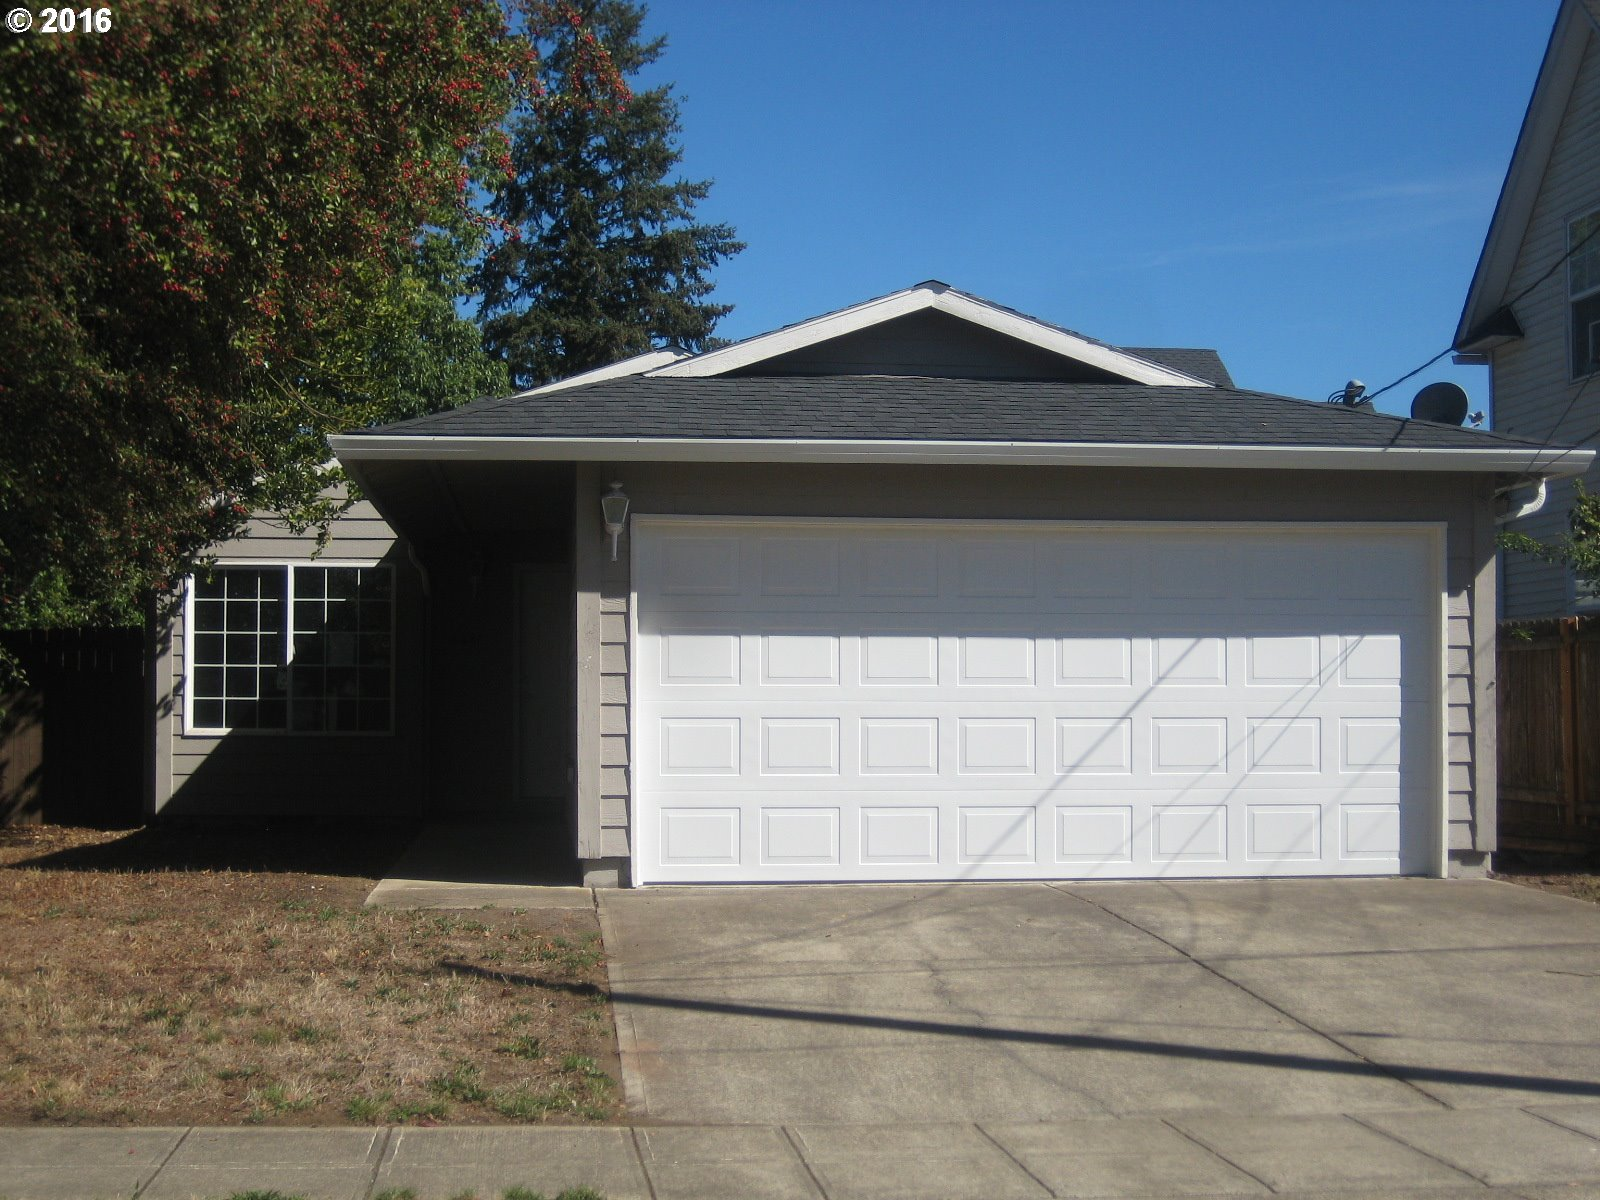 1188 sq. ft 3 bedrooms 2 bathrooms  House , Portland, OR